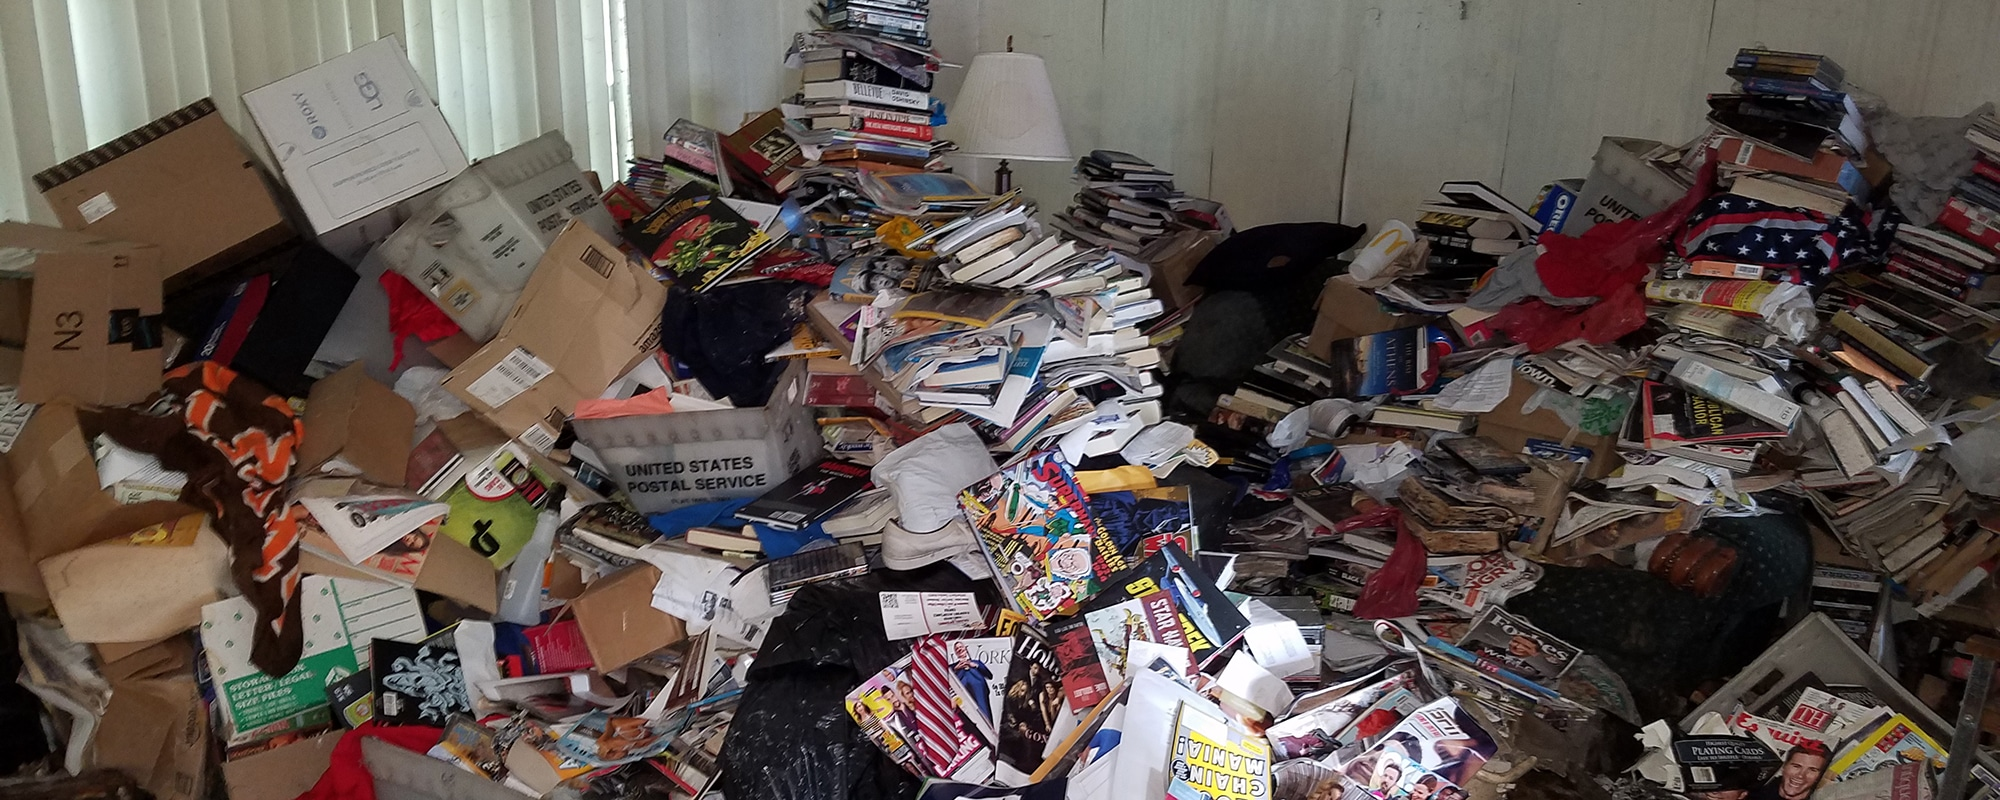 truth about hoarding cleanup south jersey